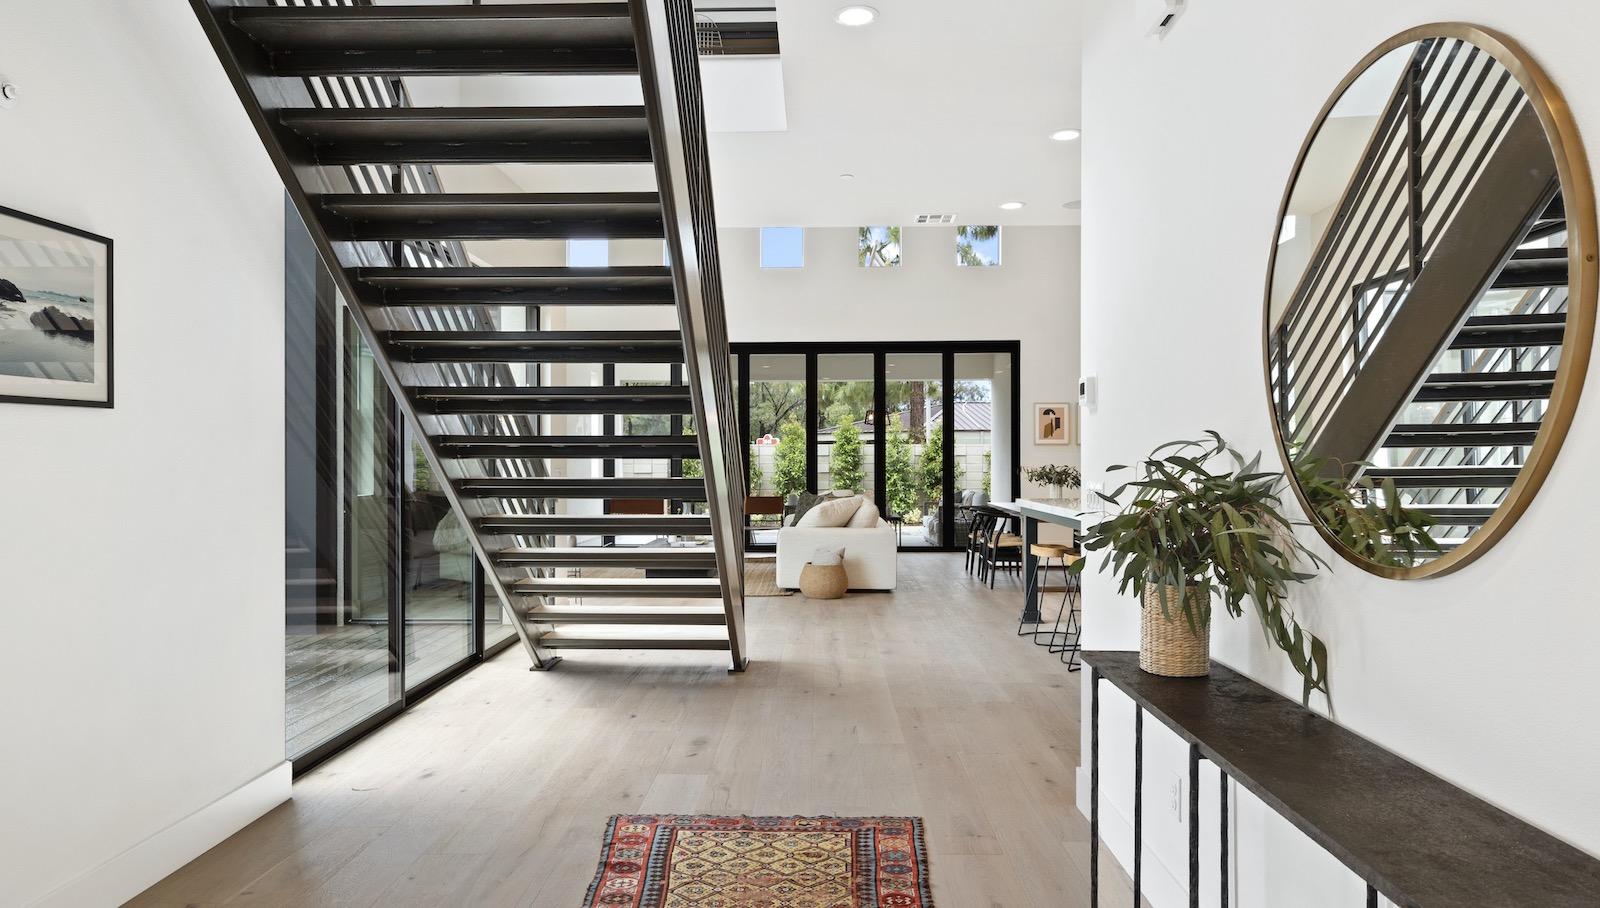 Dahlin Group's Miraval II Plan 2 interior stair with abundant natural light